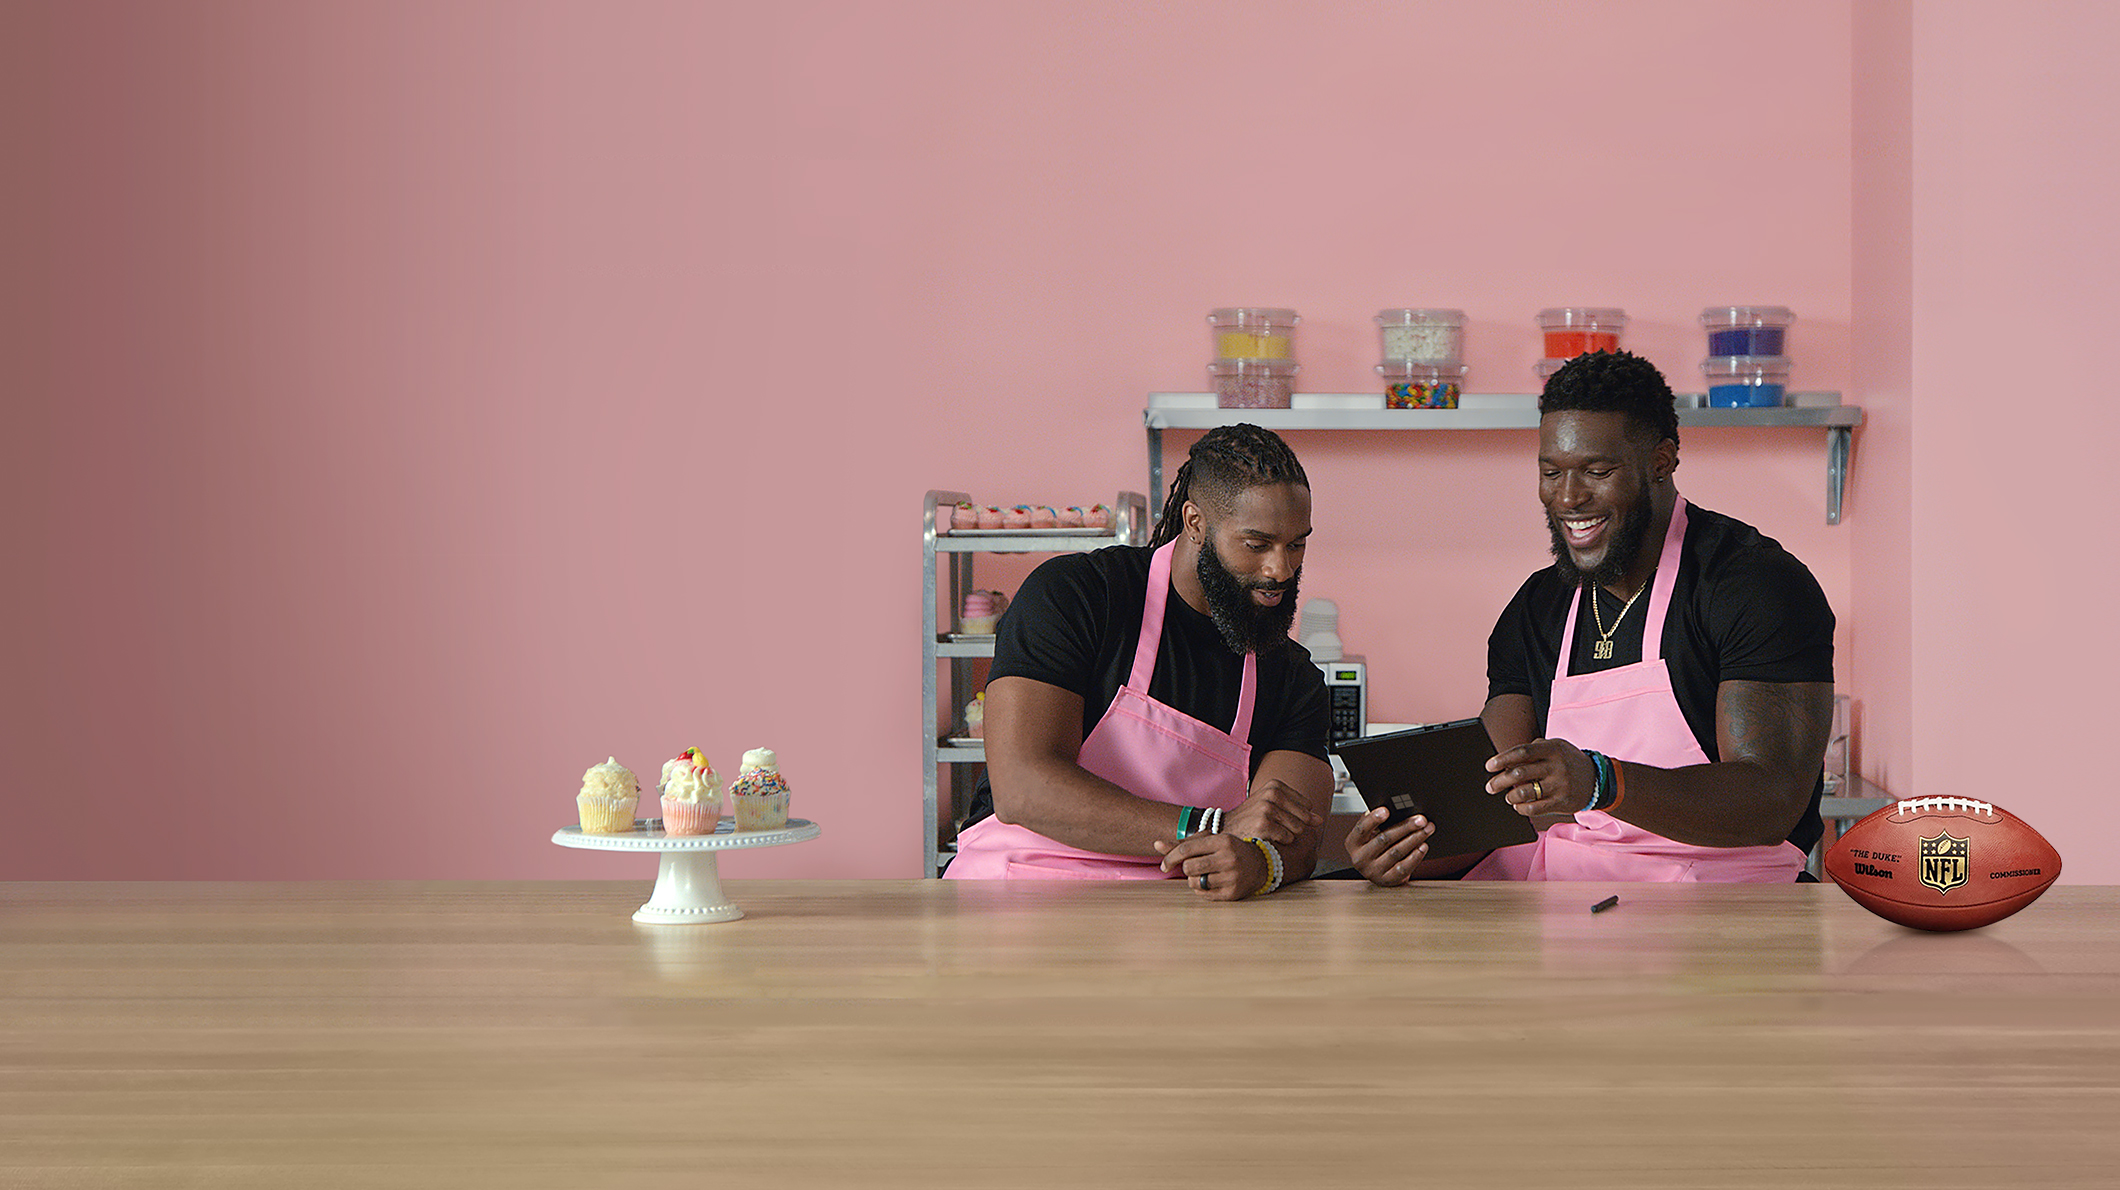 Two football players wearing aprons stand in kitchen looking at a Surface Pro. There are a plate of cupcakes and a football in the foreground.